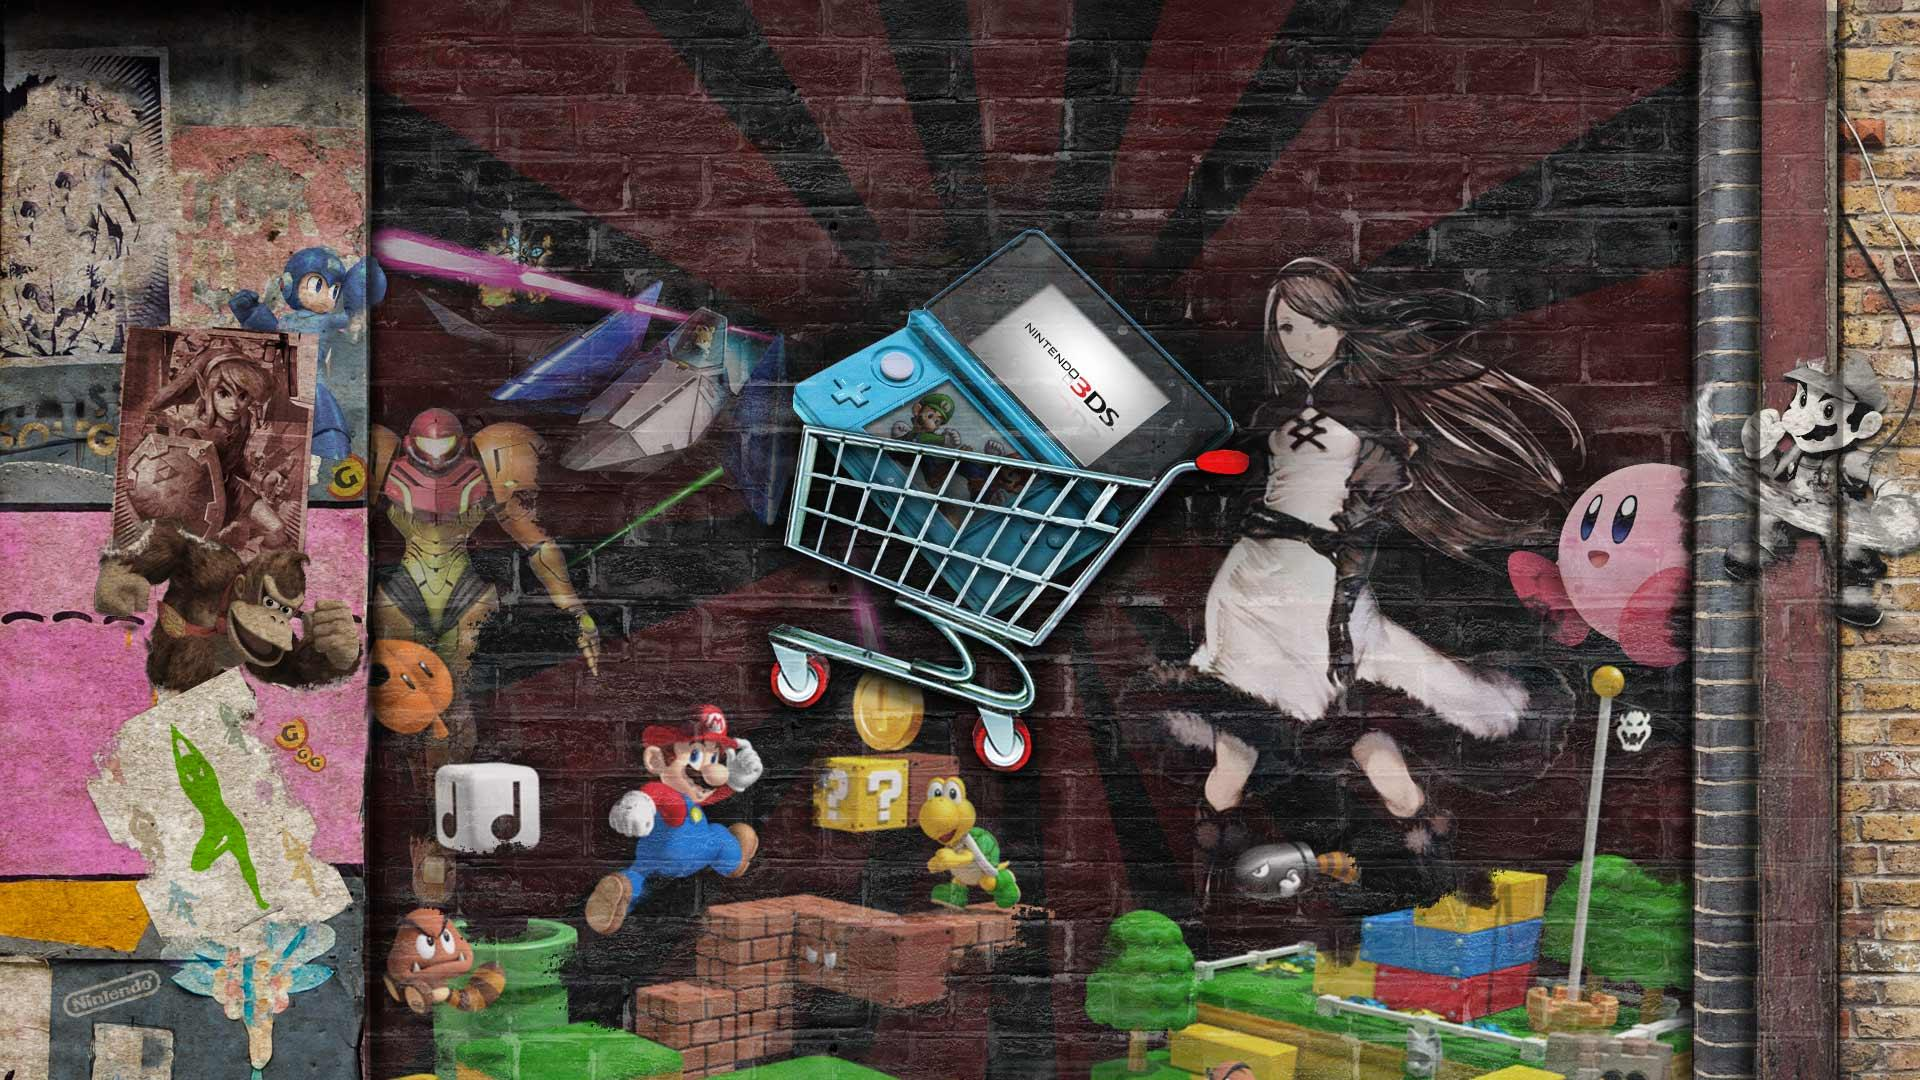 Why You Should Buy a 3DS in 2015